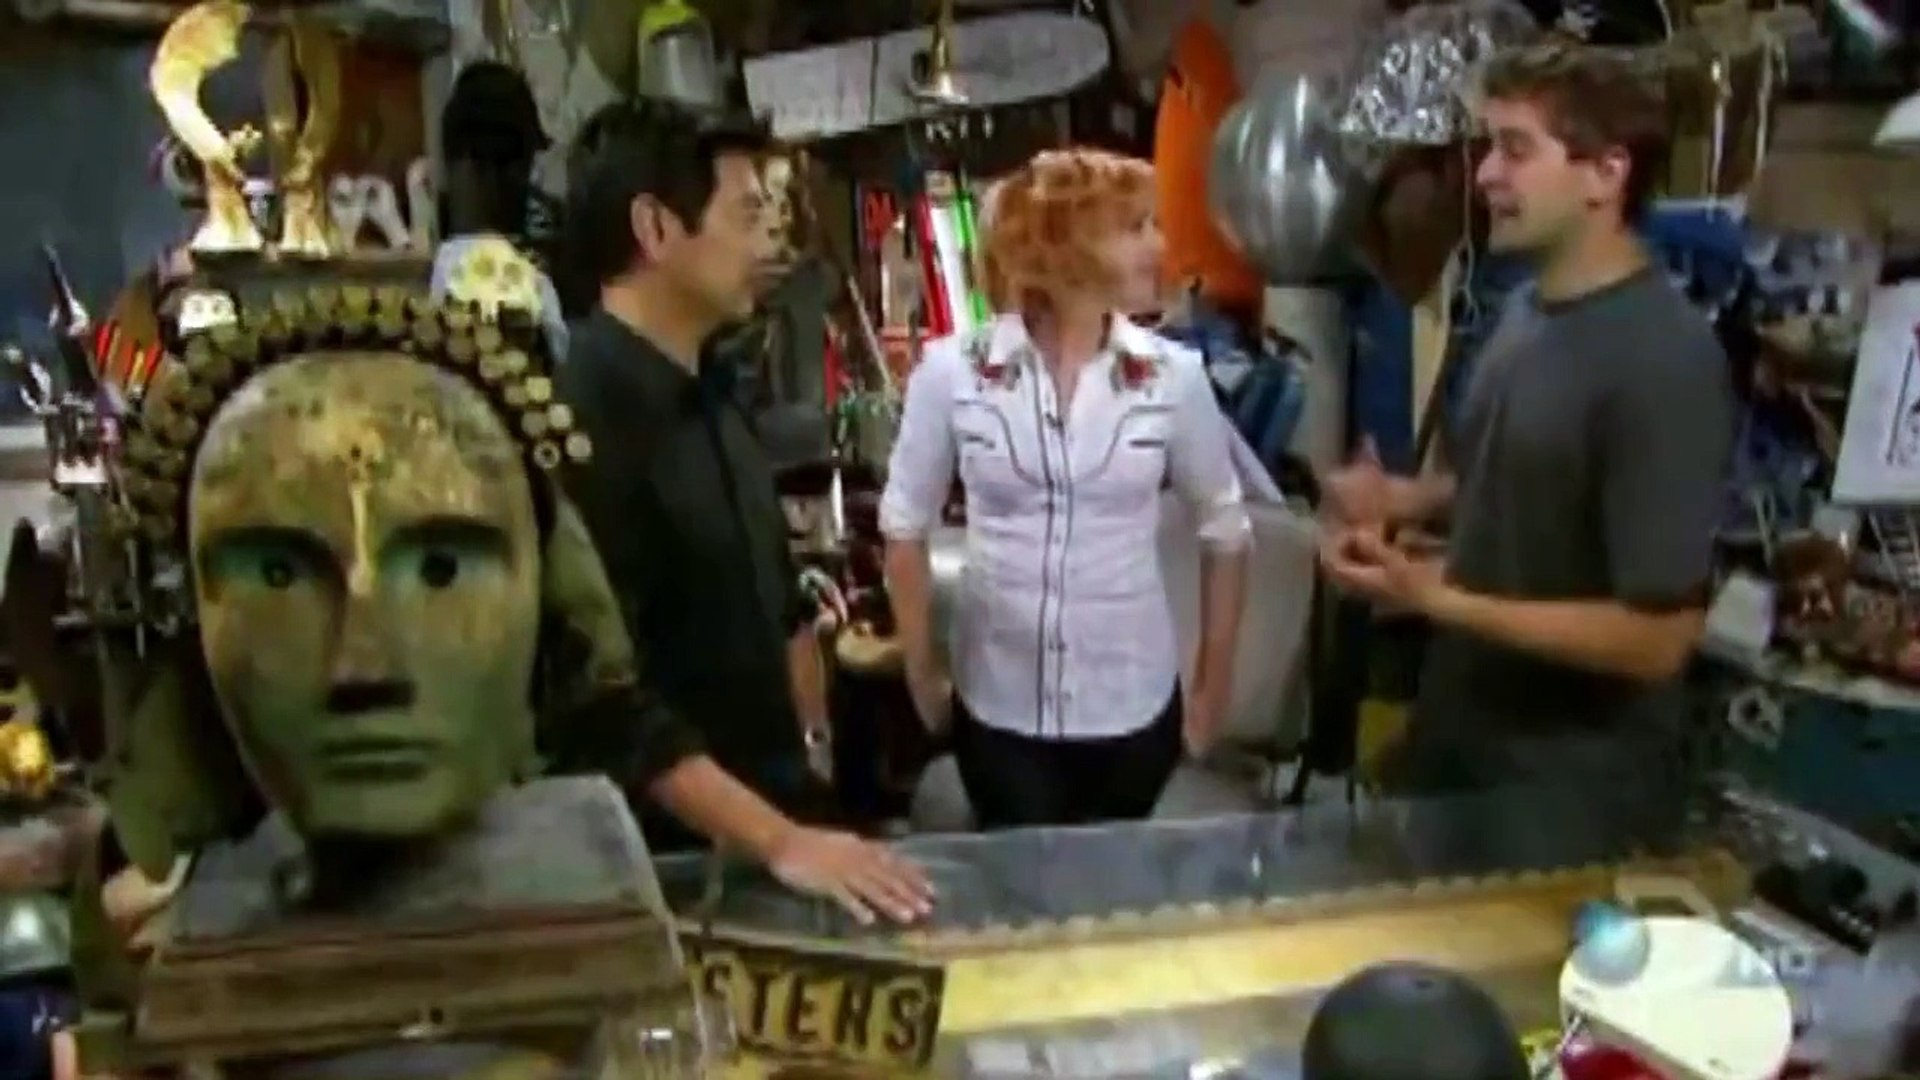 MythBusters All News S6 E19 Coffin Punch